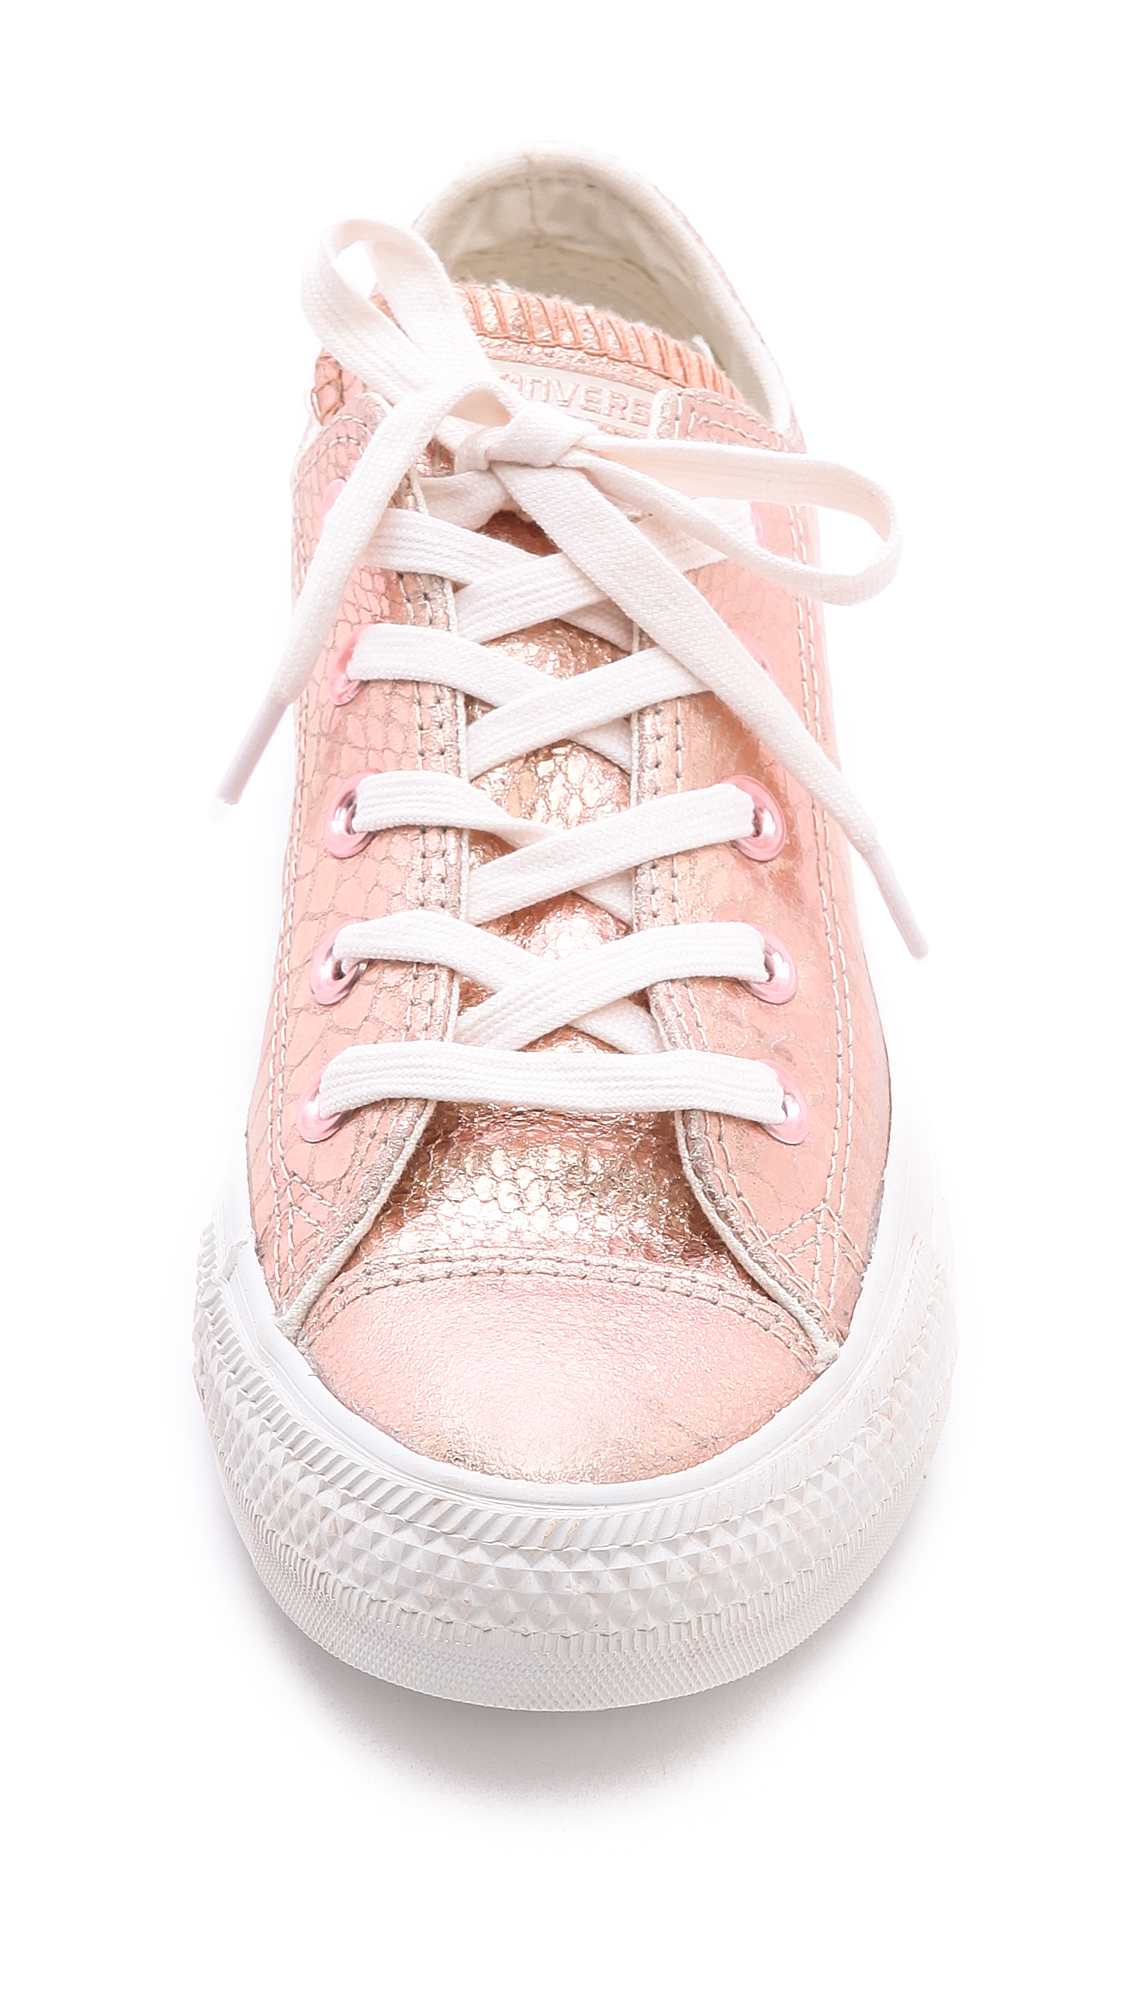 converse low top ox sneakers rose gold in pink lyst. Black Bedroom Furniture Sets. Home Design Ideas